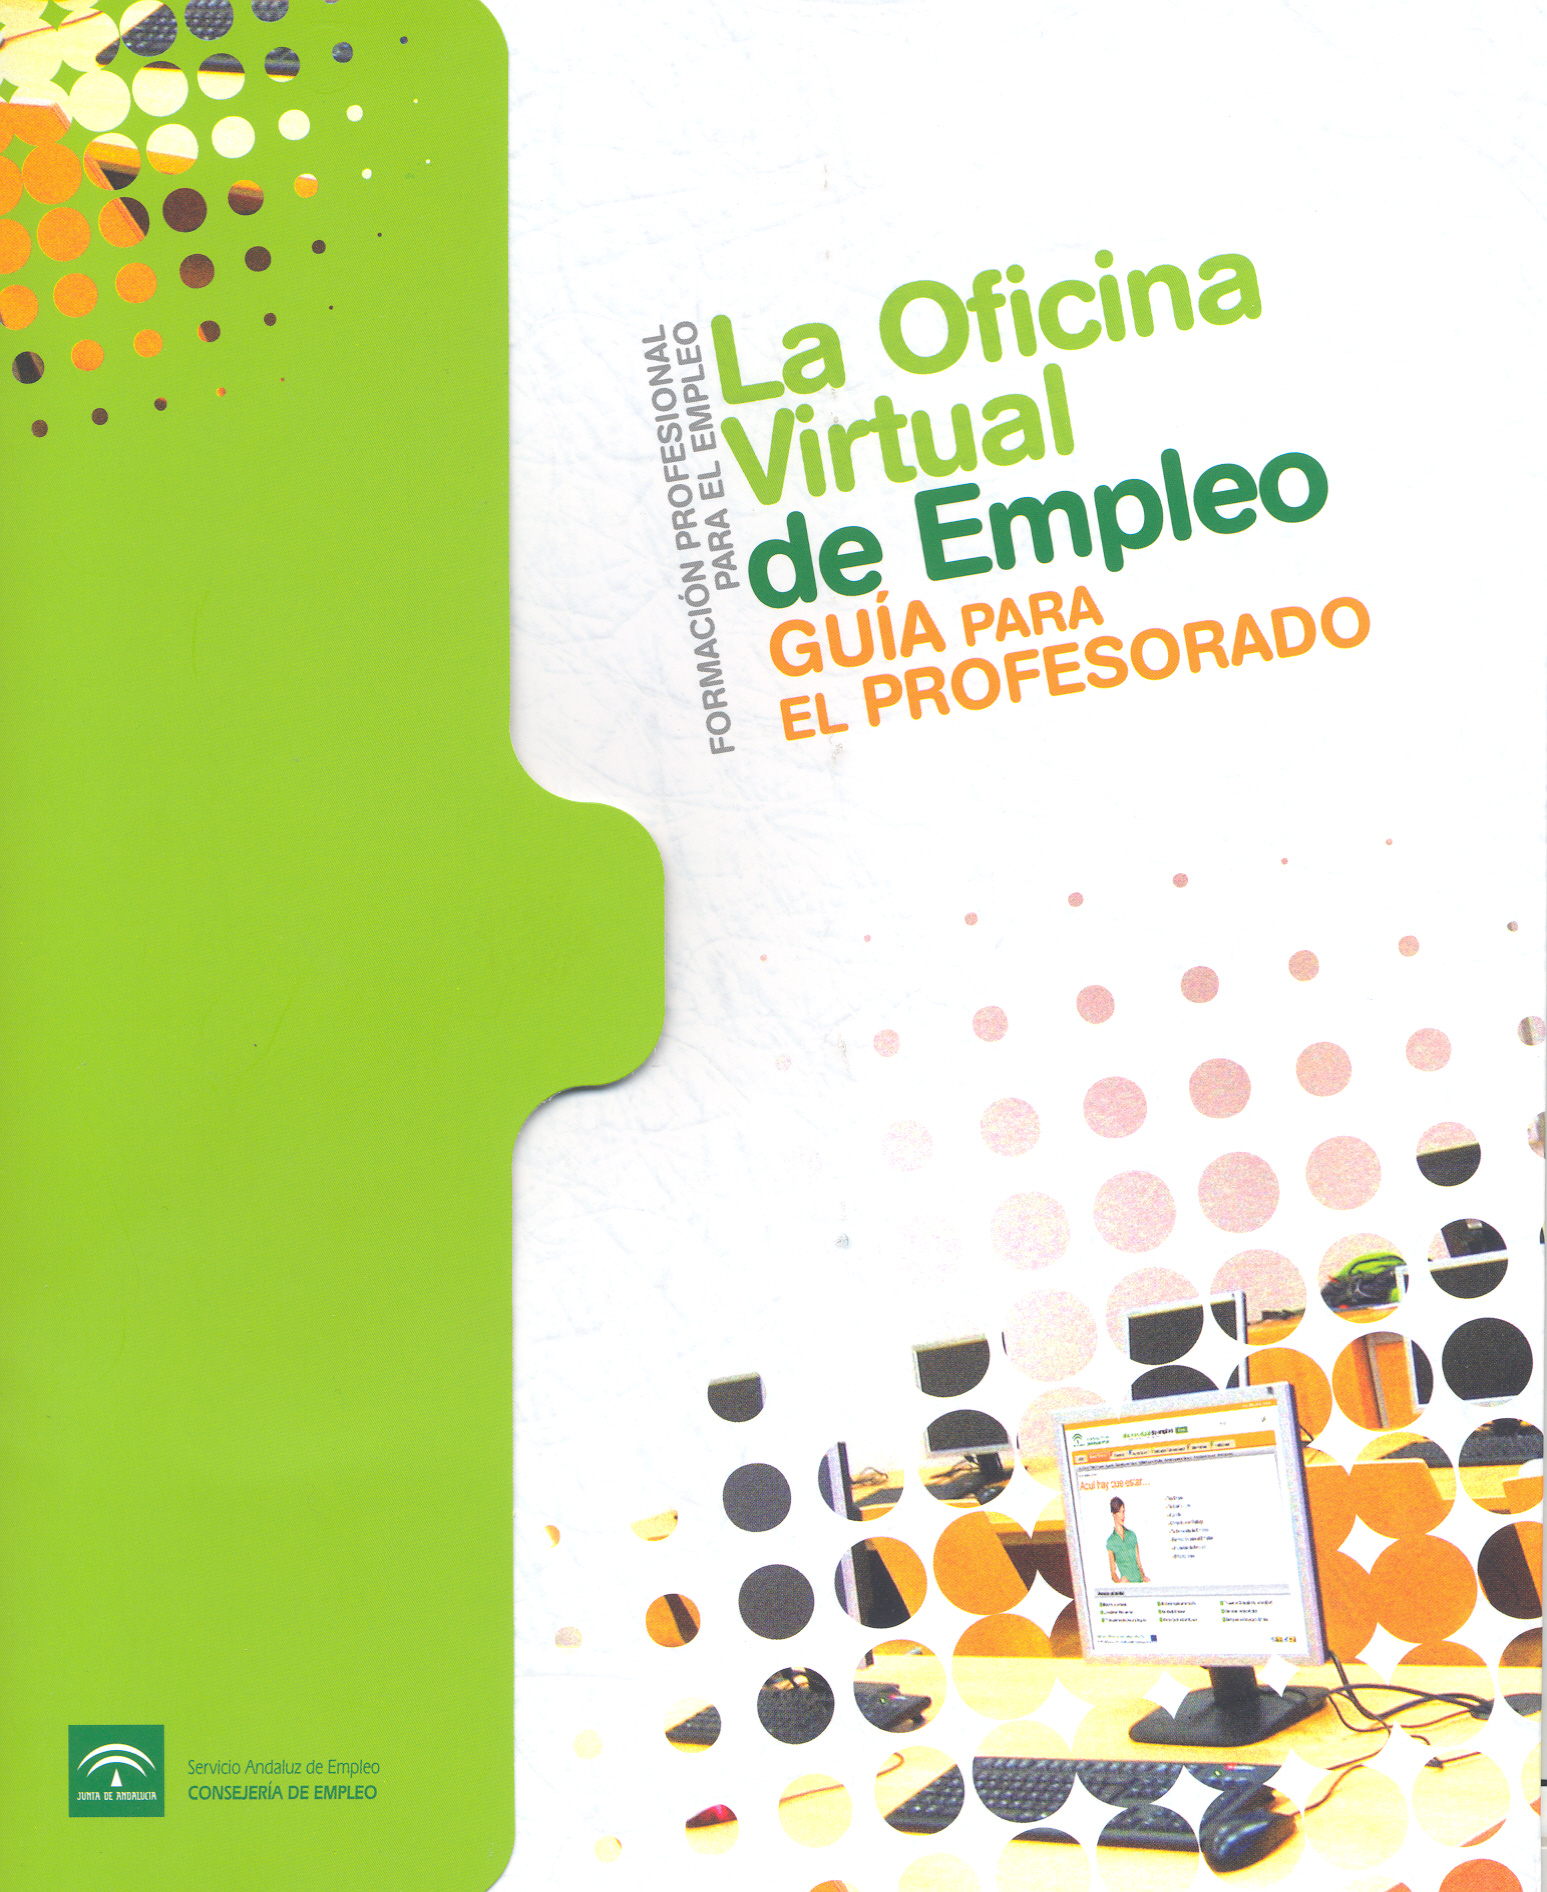 Junta de andaluc a la oficina virtual de empleo folleto for Oficina del sae